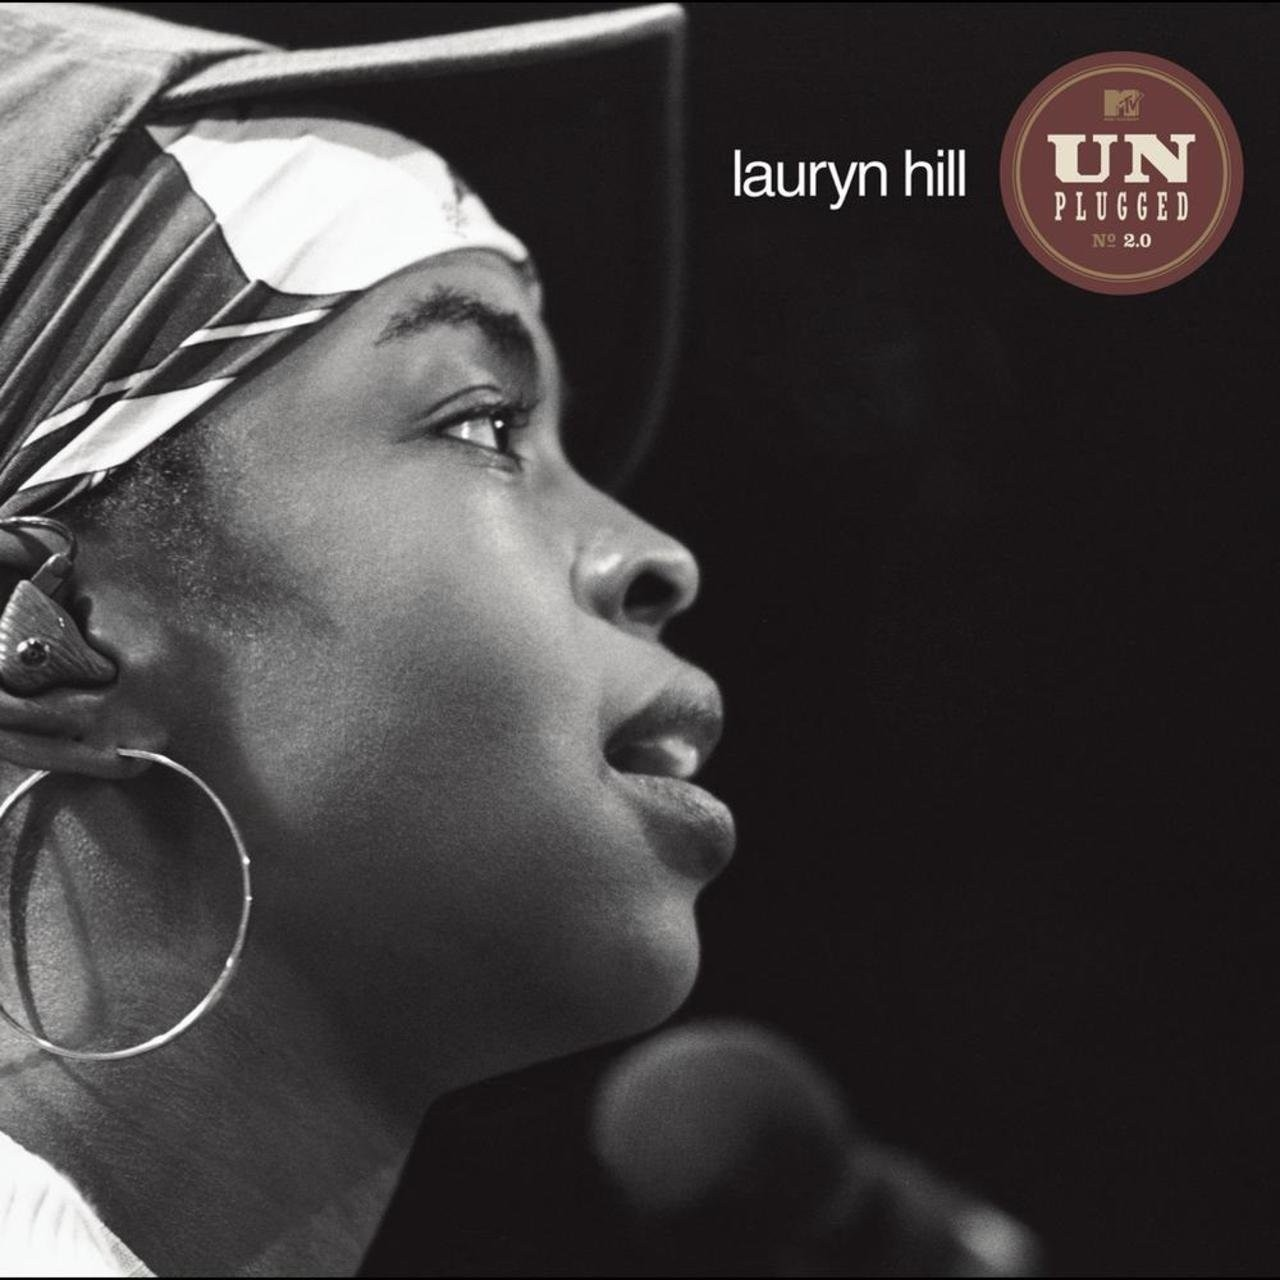 Lauryn Hill - MTV Unplugged No 2.0